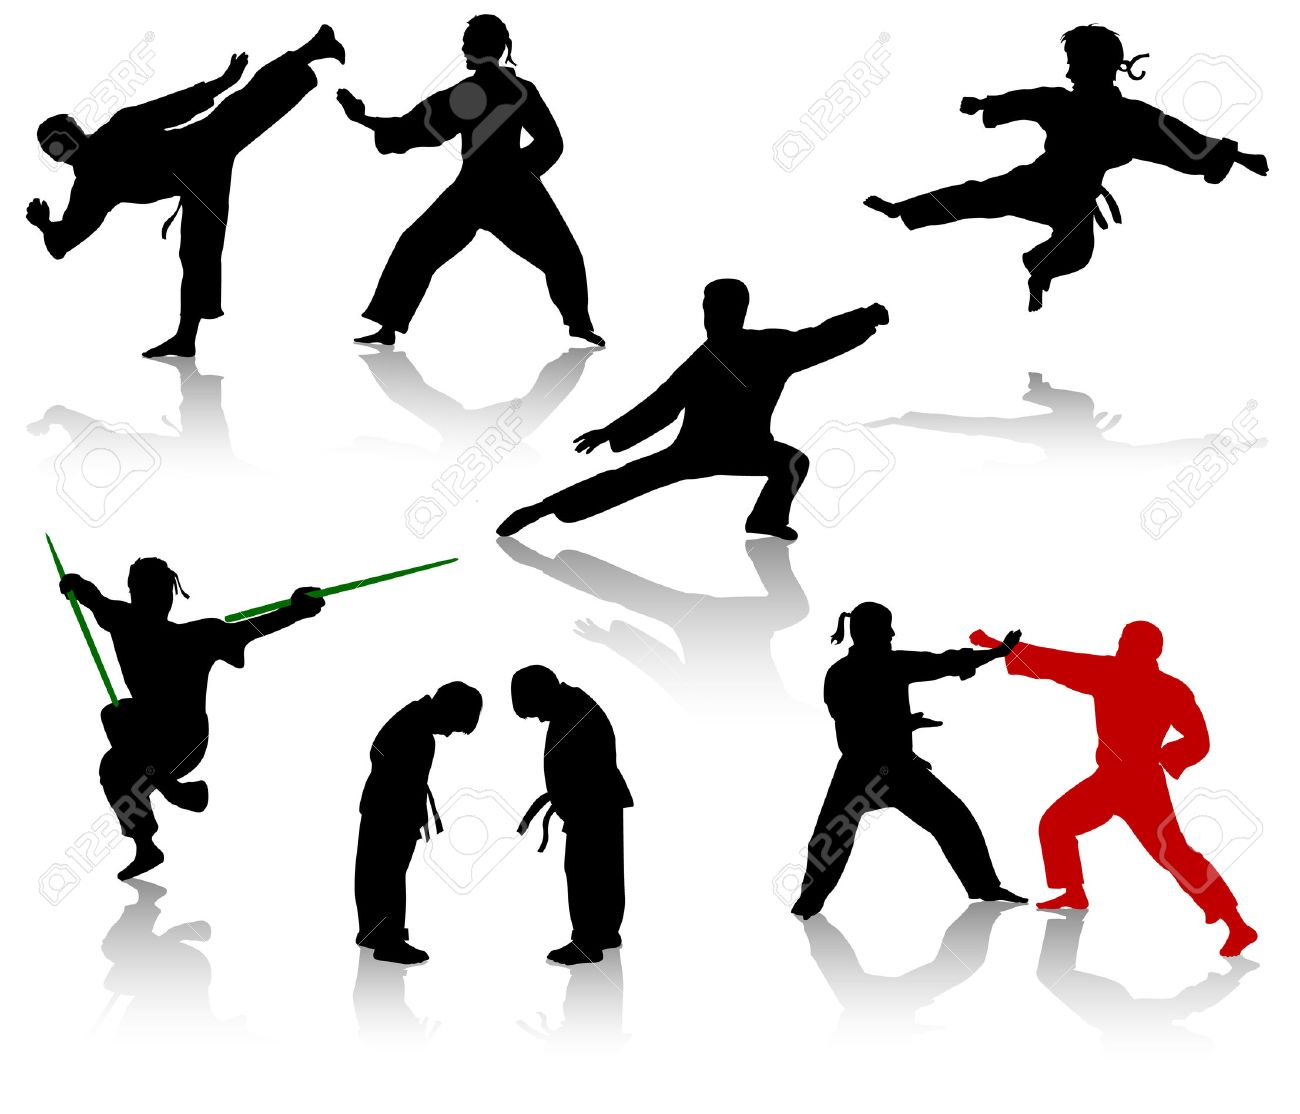 Silhouettes of people in positions of karate and taekwondo Stock Vector - 4296506